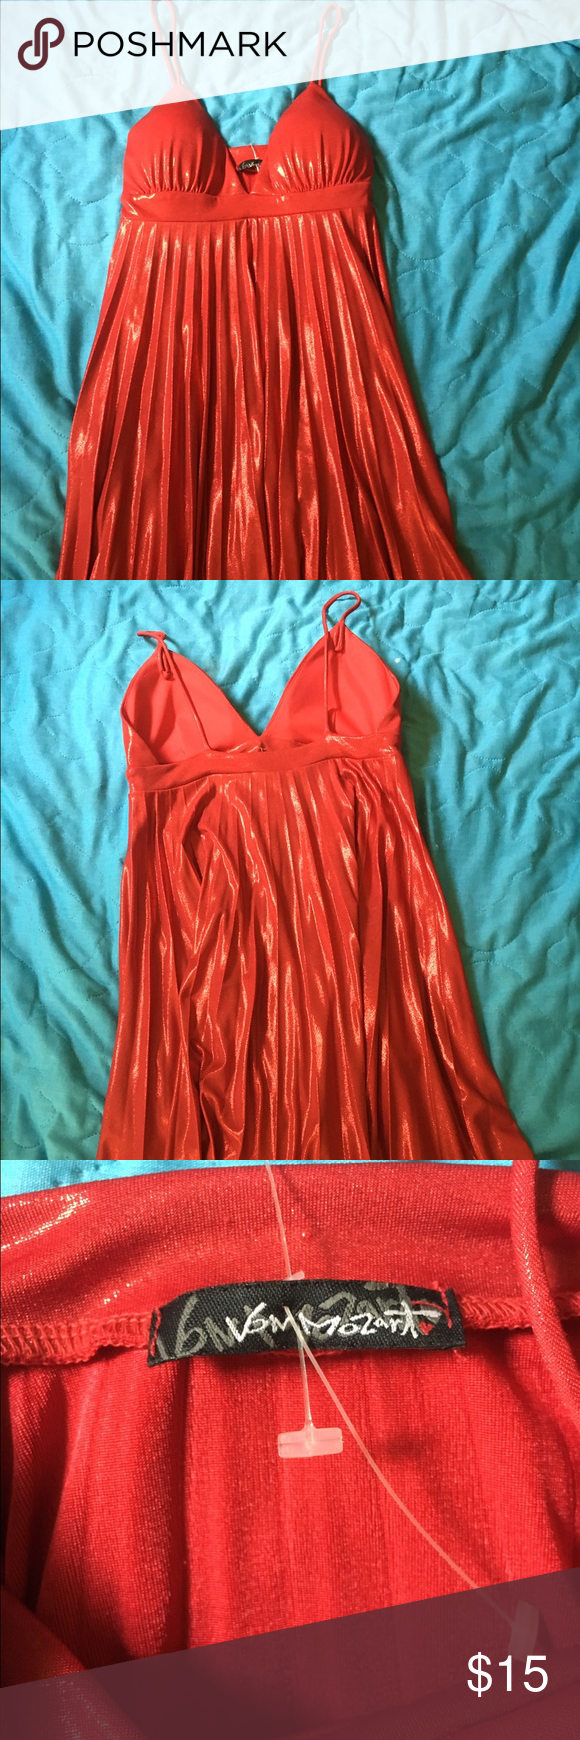 Slinky sparkly pleated spaghetti strap dress Slinky sparkly pleated spaghetti strap dress, padding in bust, never worn, Dresses Mini